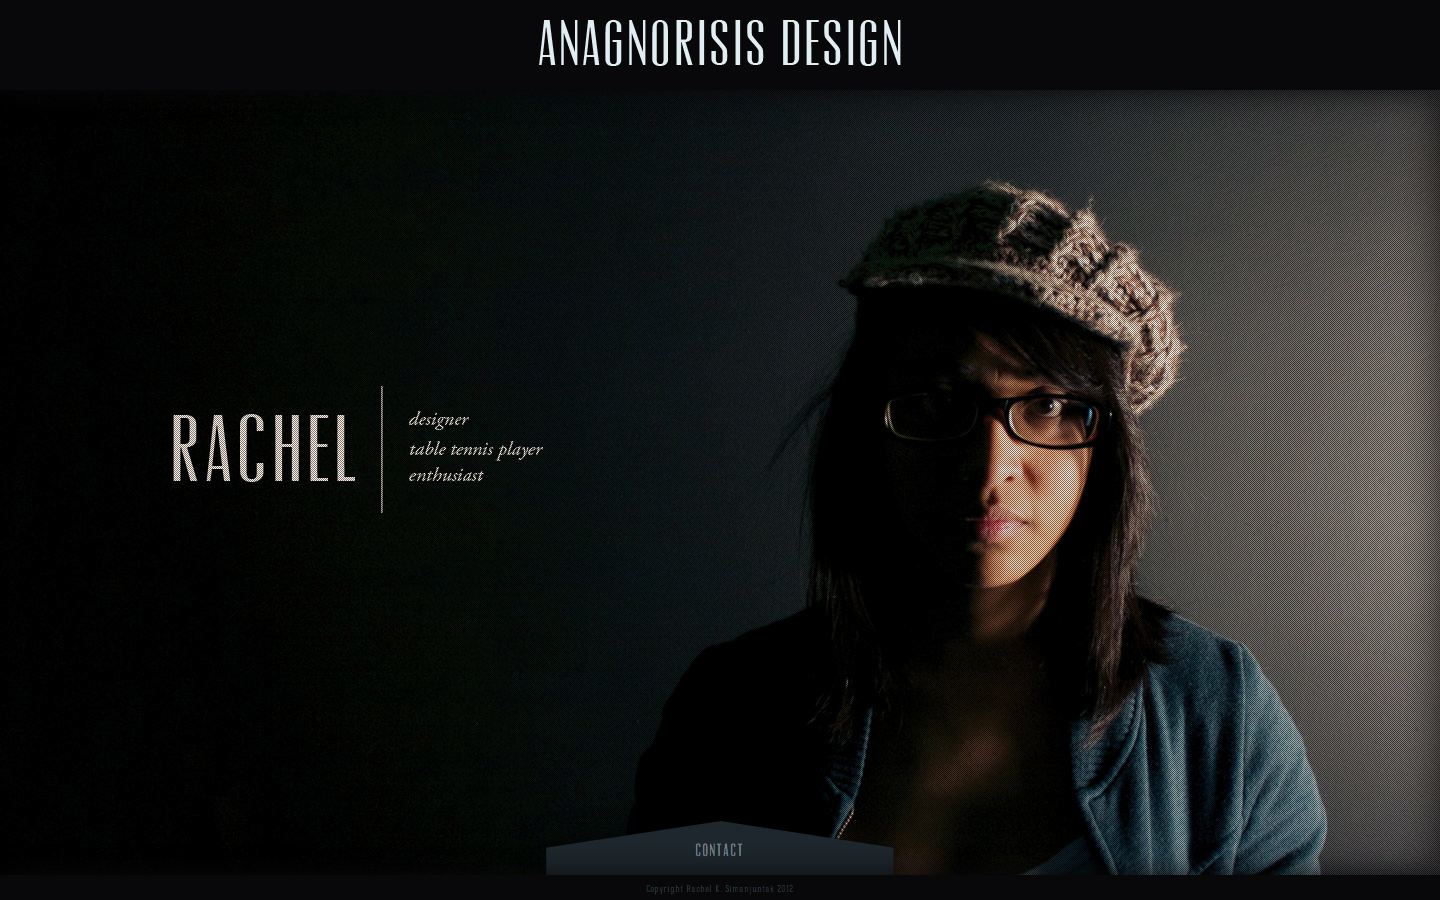 Anagnorisis Design Website Screenshot